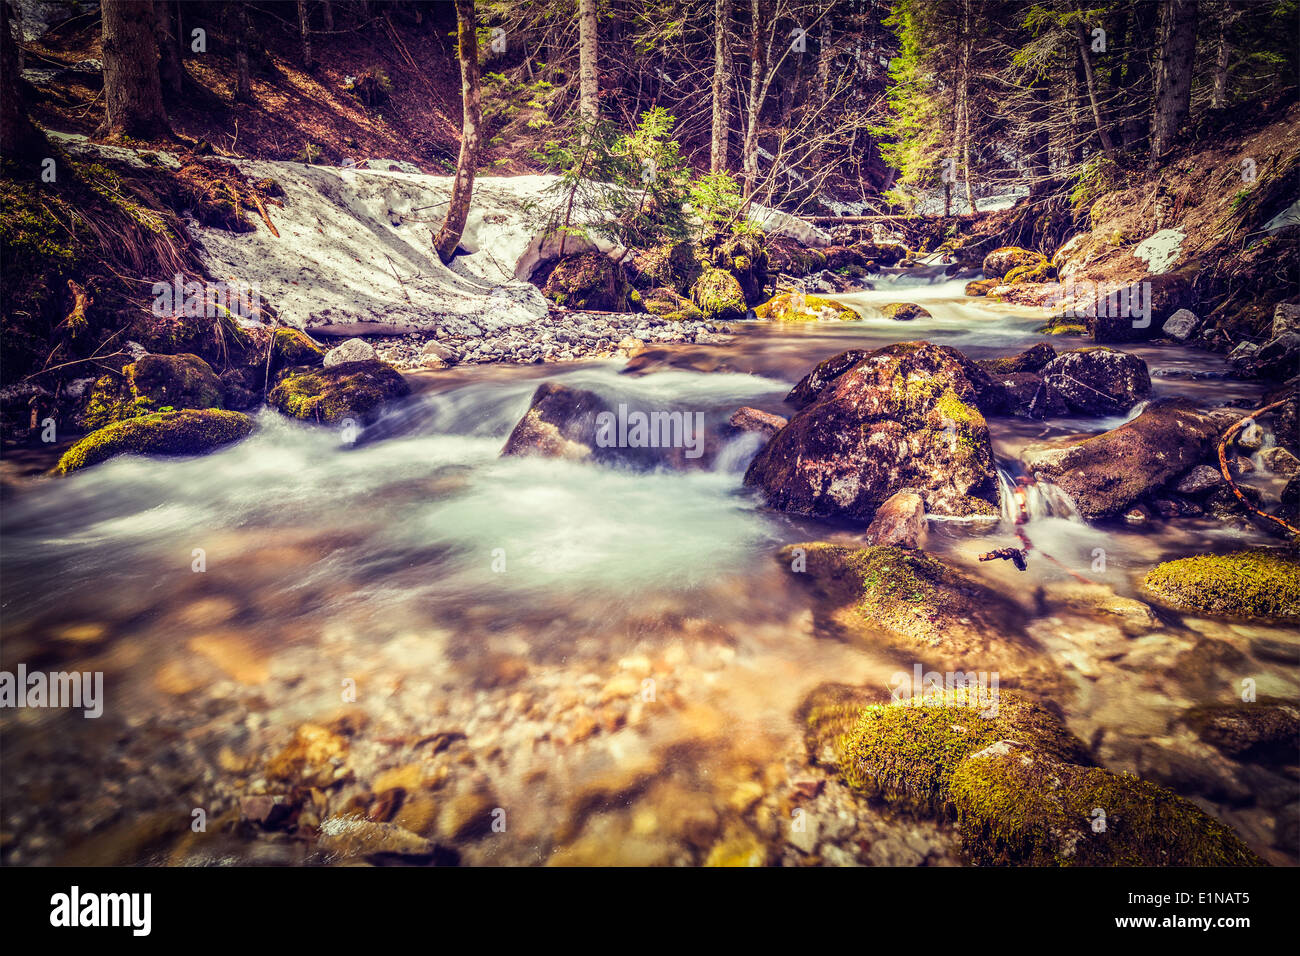 Vintage retro hipster style travel image of Cascade of Sibli-Wasserfall. Rottach-Egern, Bavaria, Germany - Stock Image